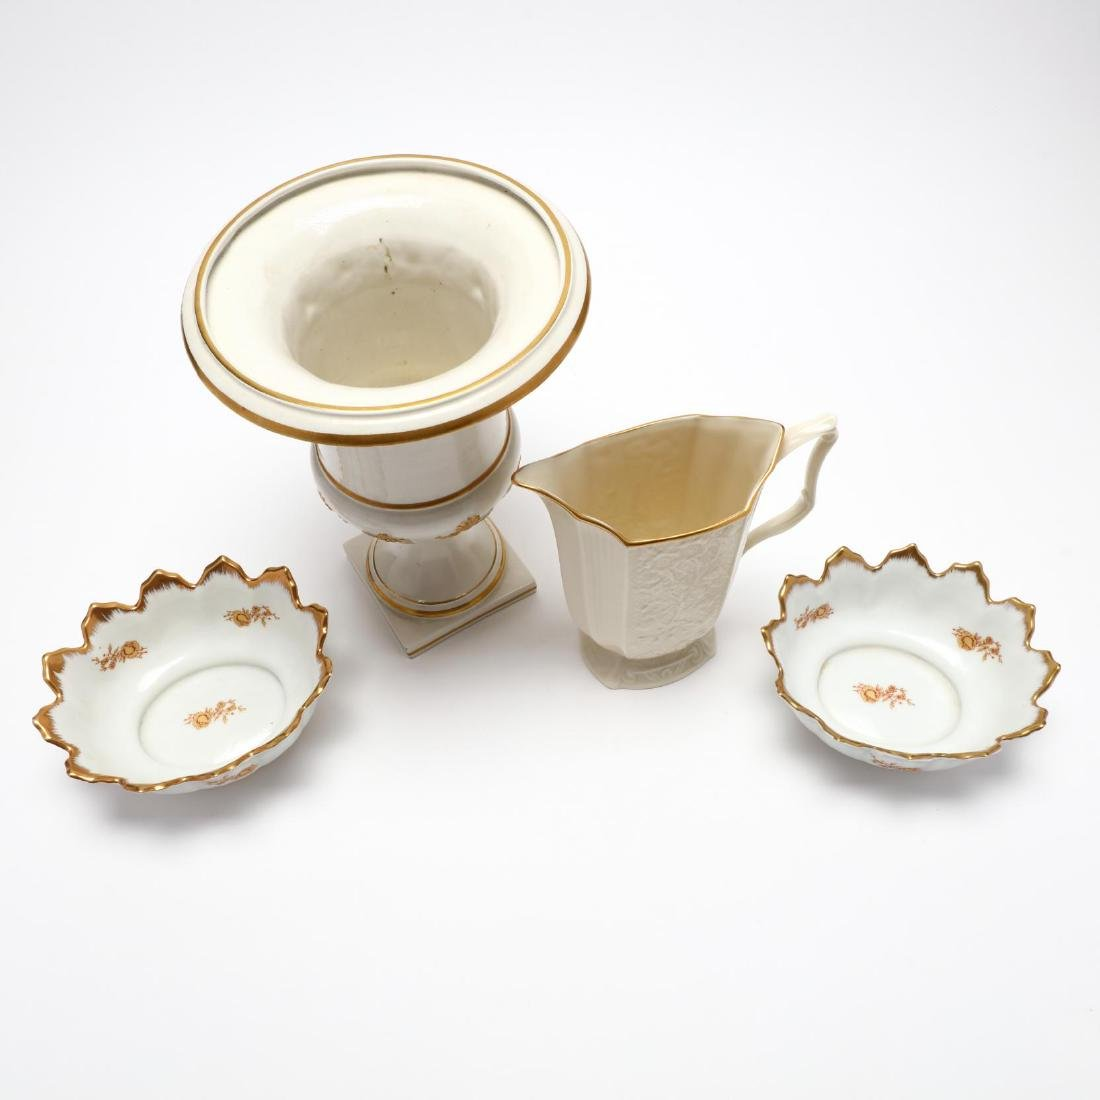 Group of Porcelain Serving Accessories - 2